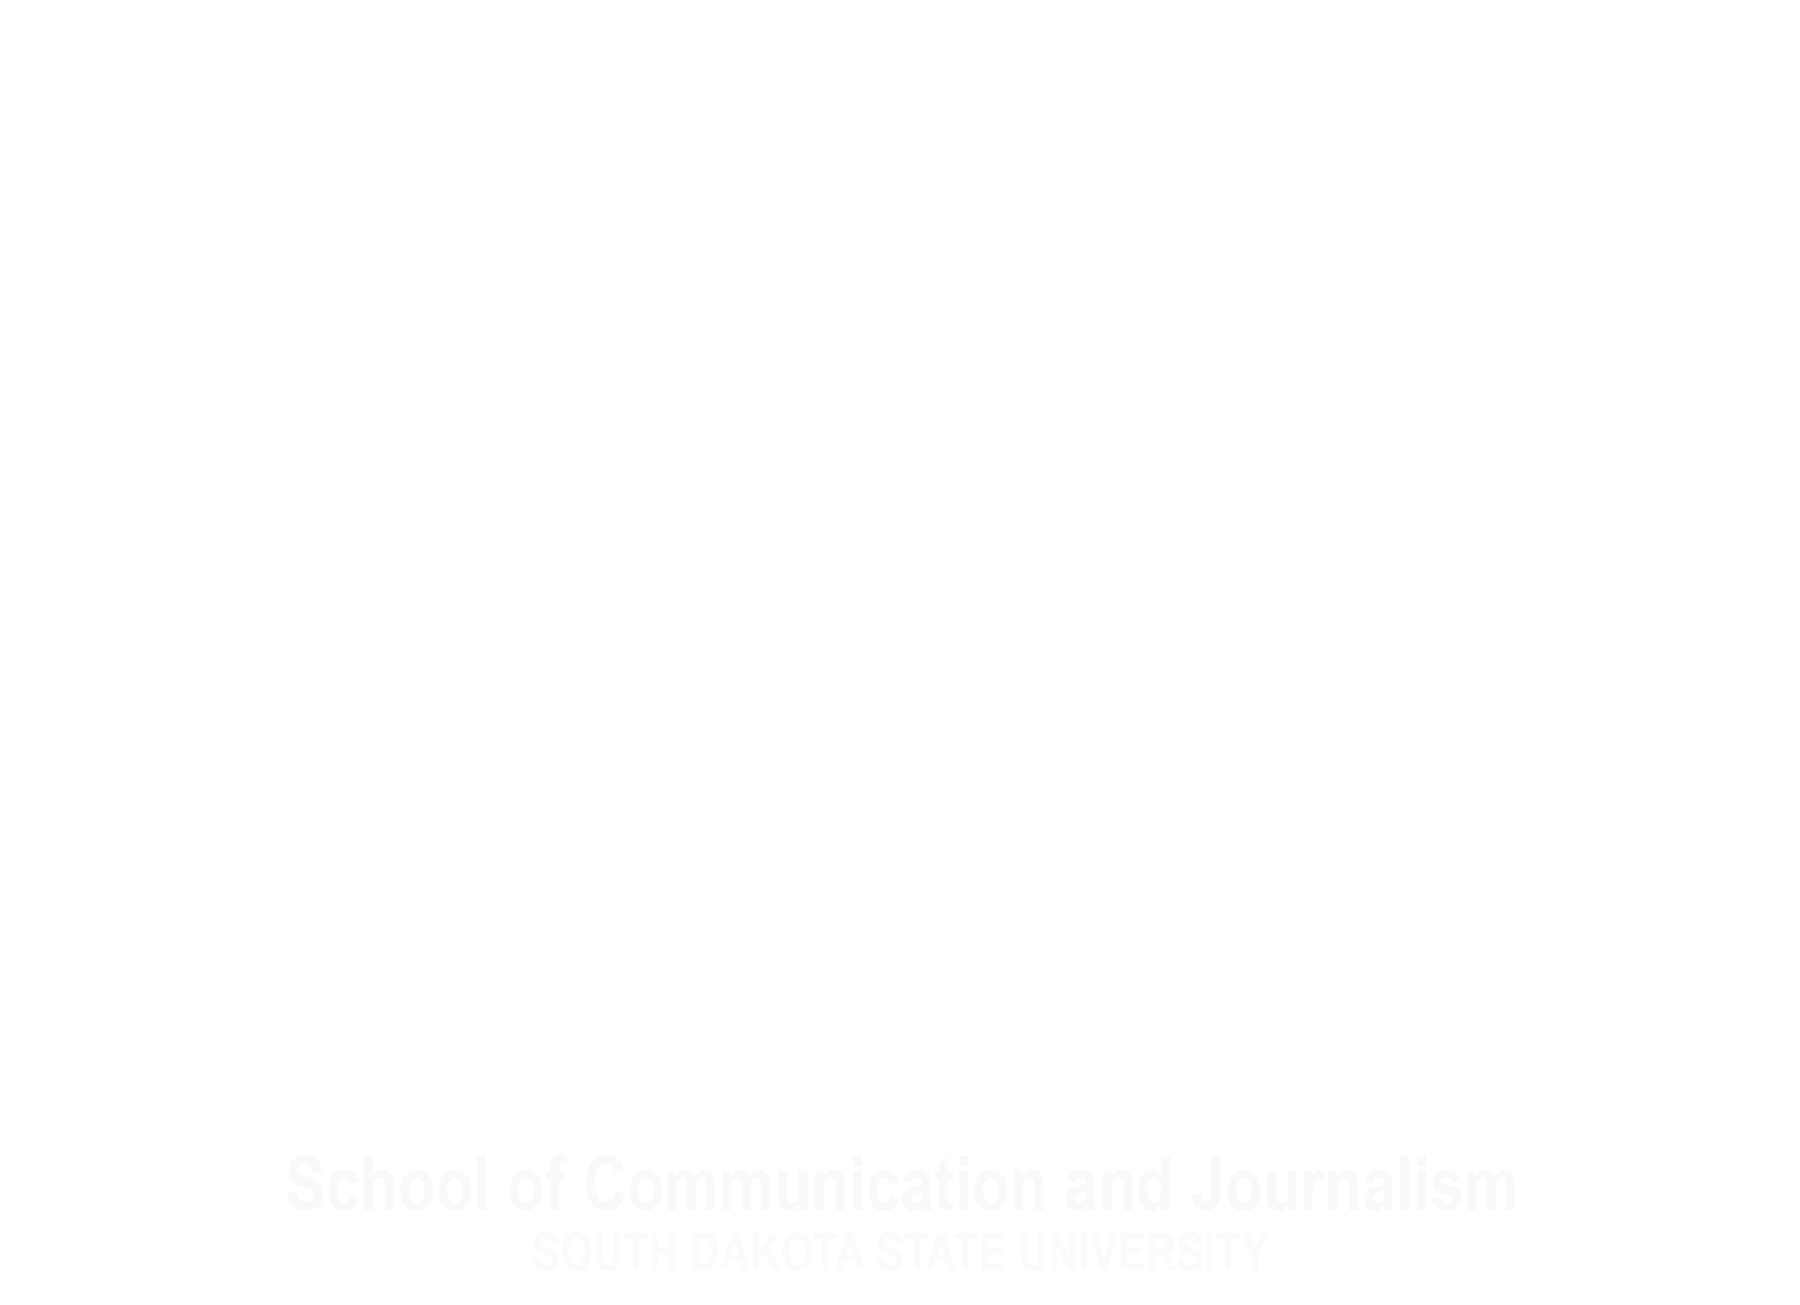 A Day in the Life of South Dakota